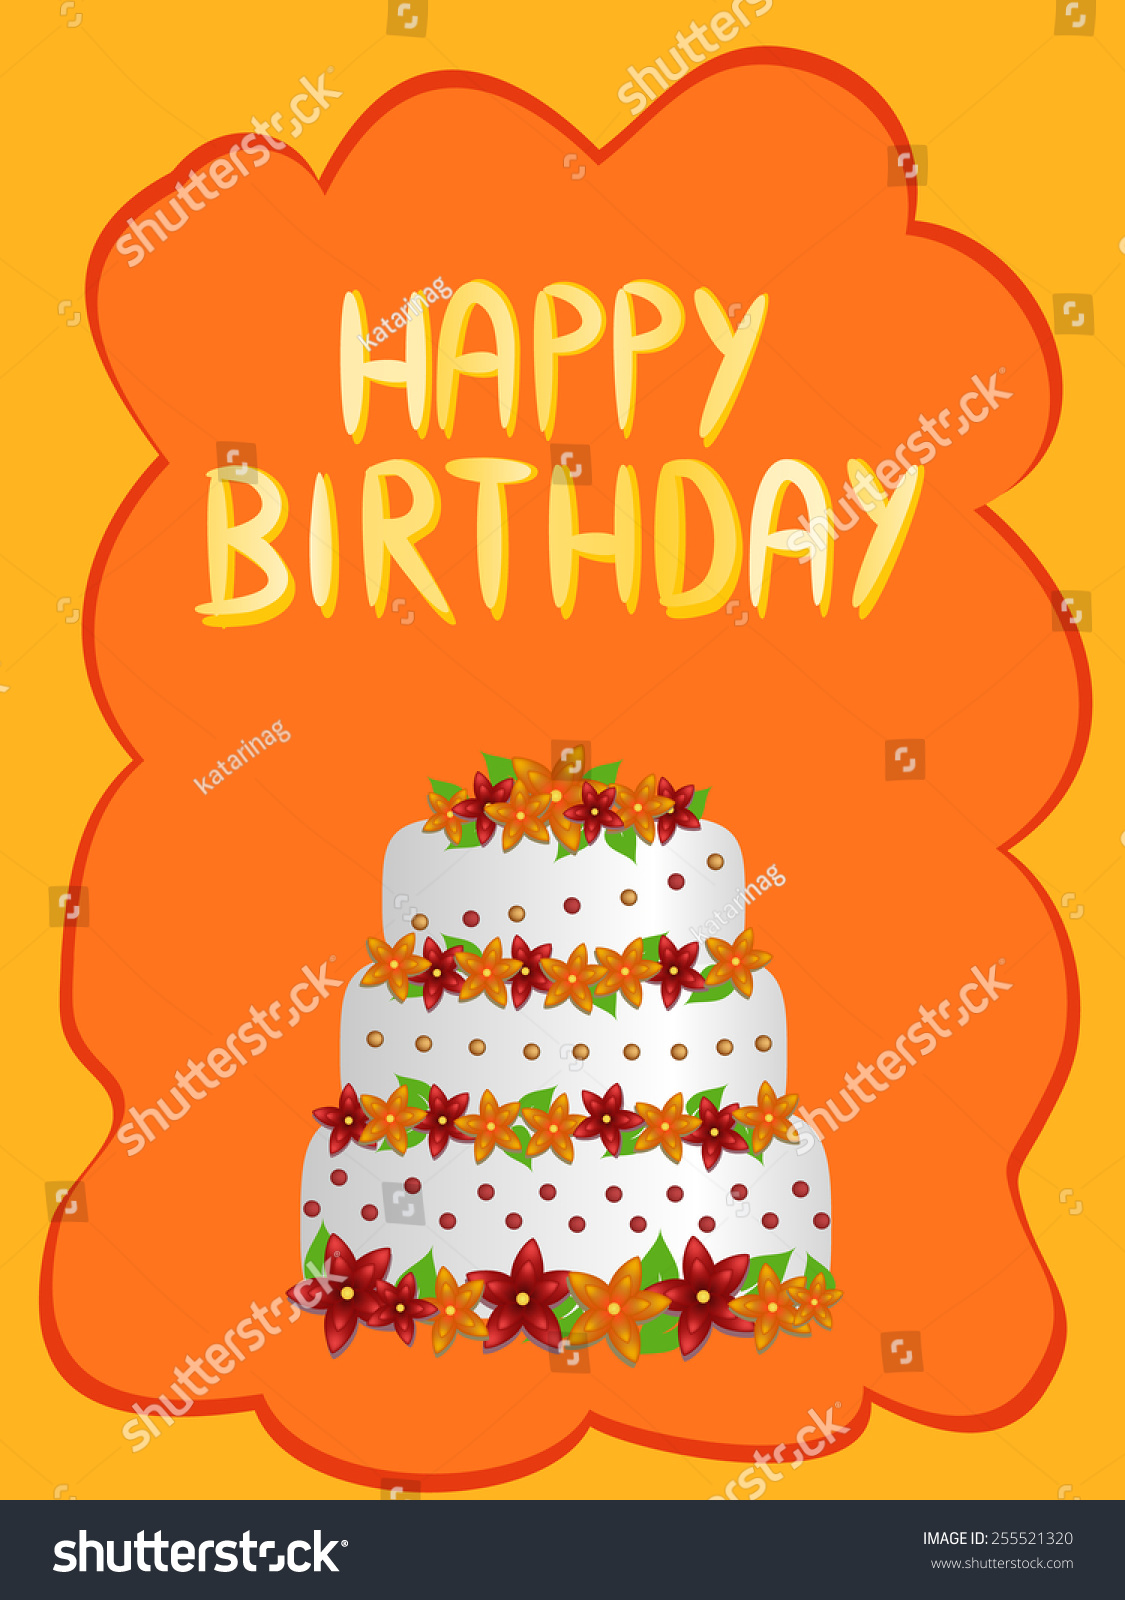 Happy Birthday Cake Flowers Illustration Stock Illustration